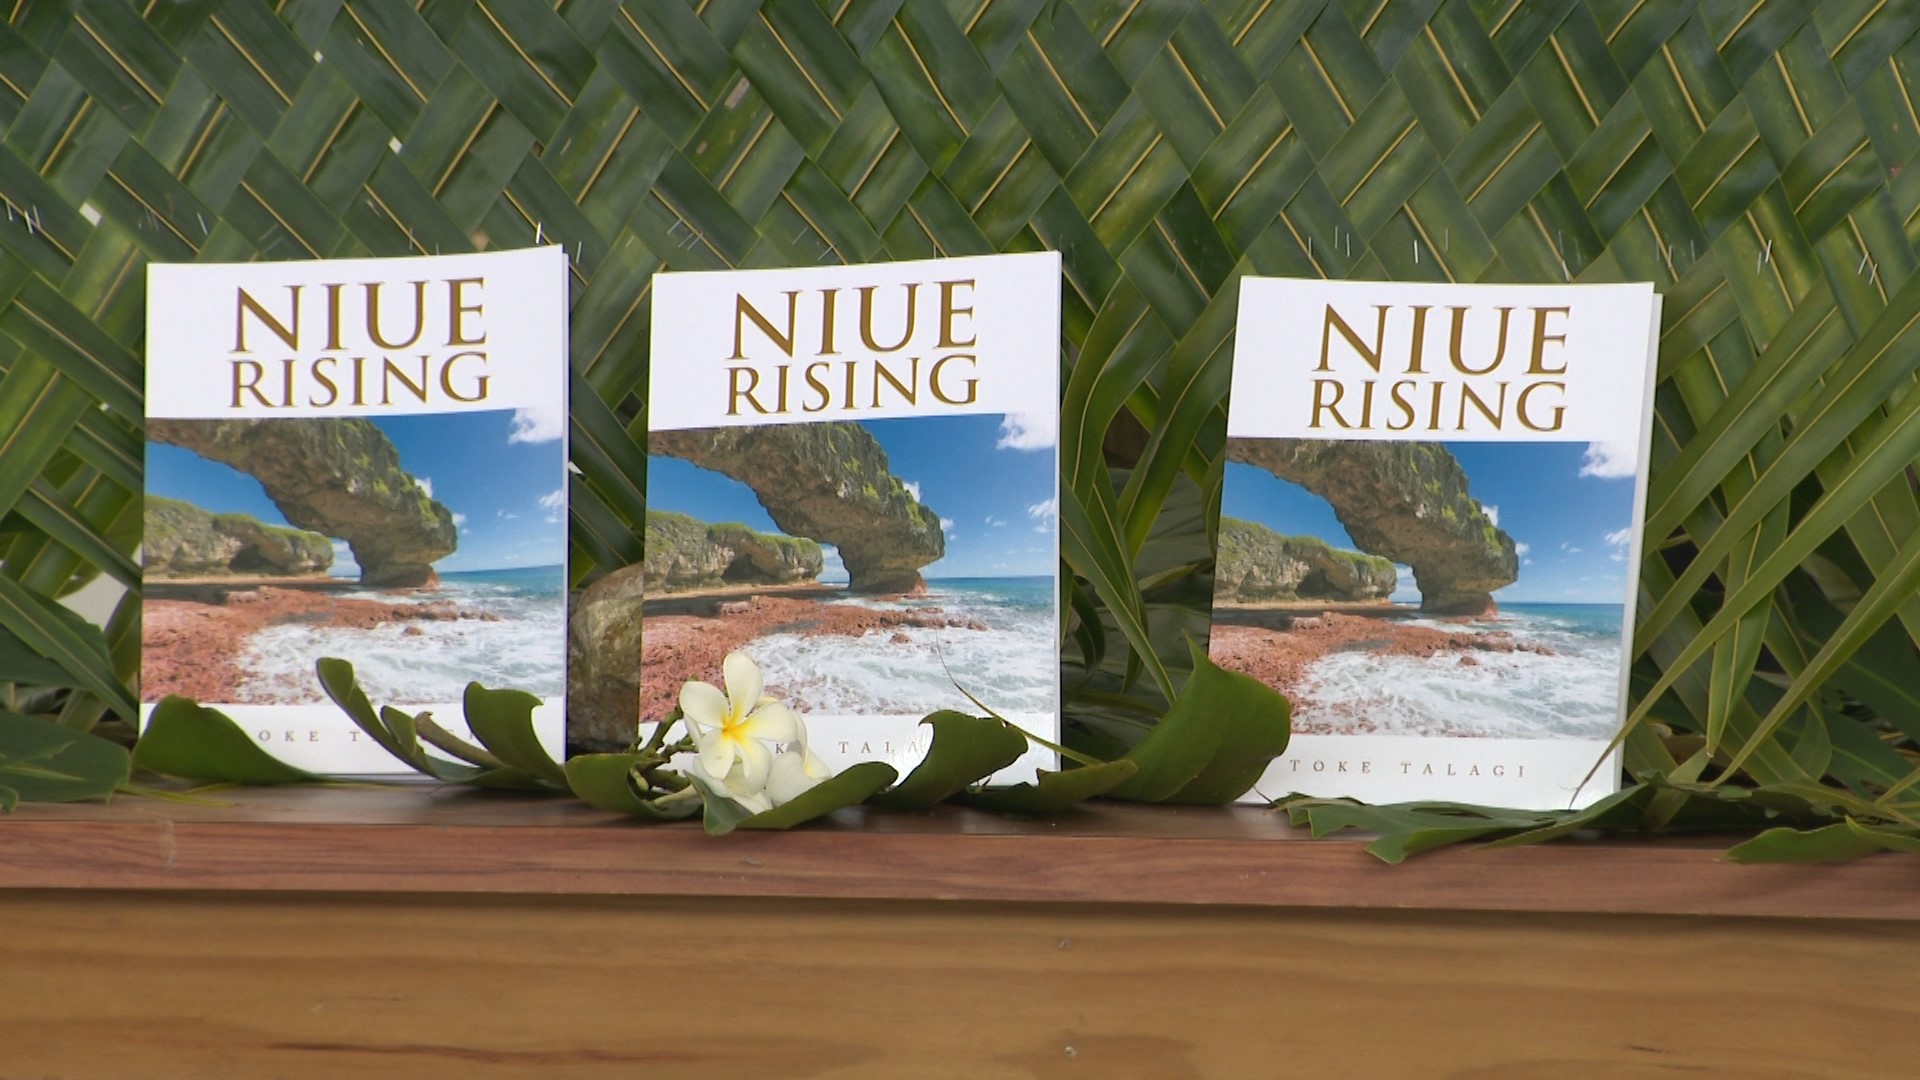 Premier Sir Toke Talagi's new book has been officially launched today.  Called Niue Rising, this is a biography of Sir Toke Tufukia Talagi and his life in Niue to a knight of the realm.   It…